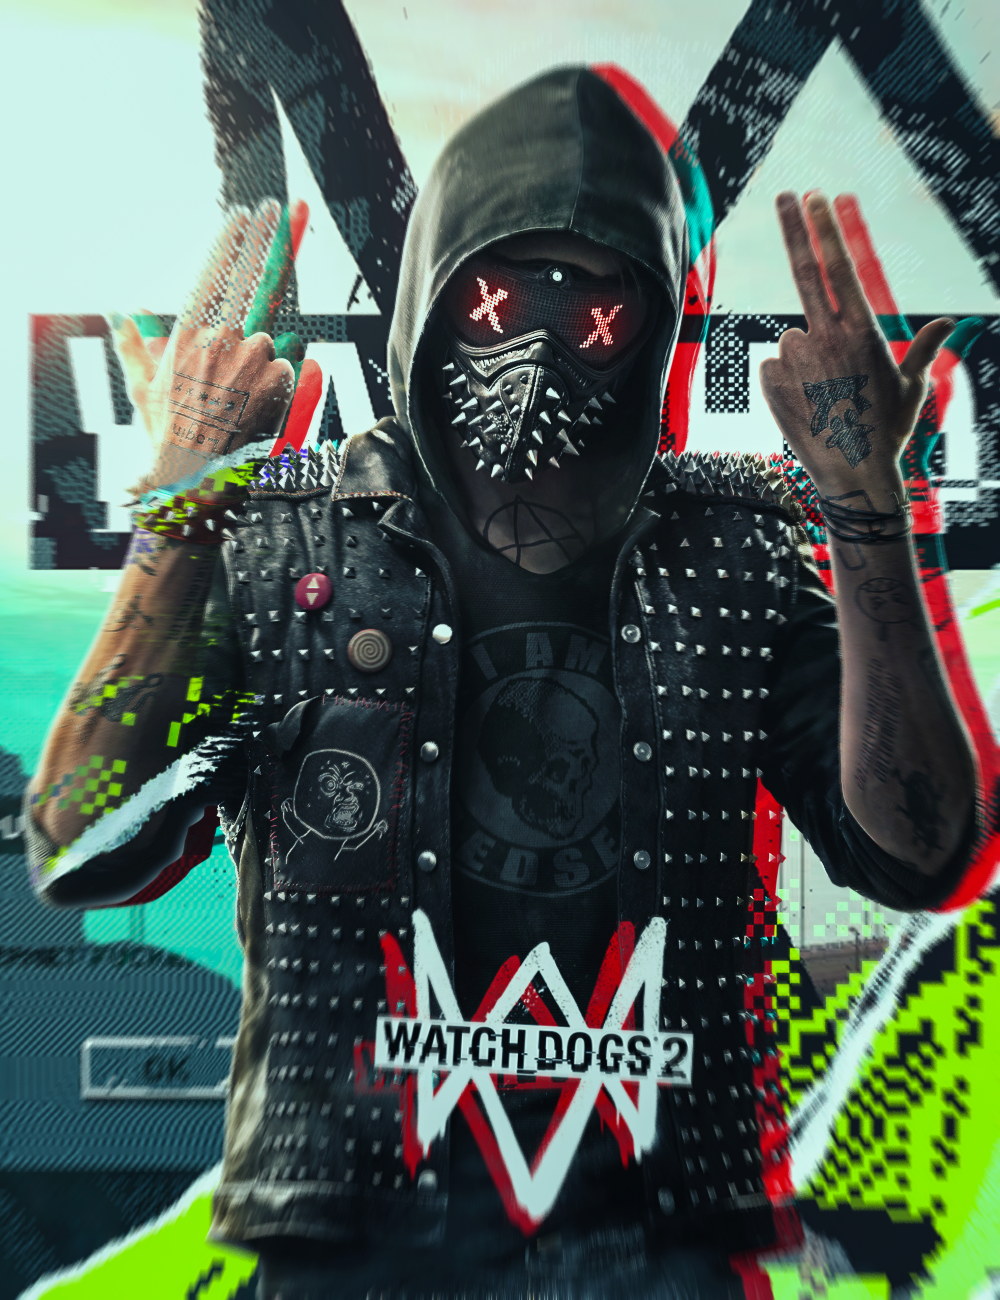 Wrench Watch Dogs 2 Wallpaper Posted By Ethan Thompson